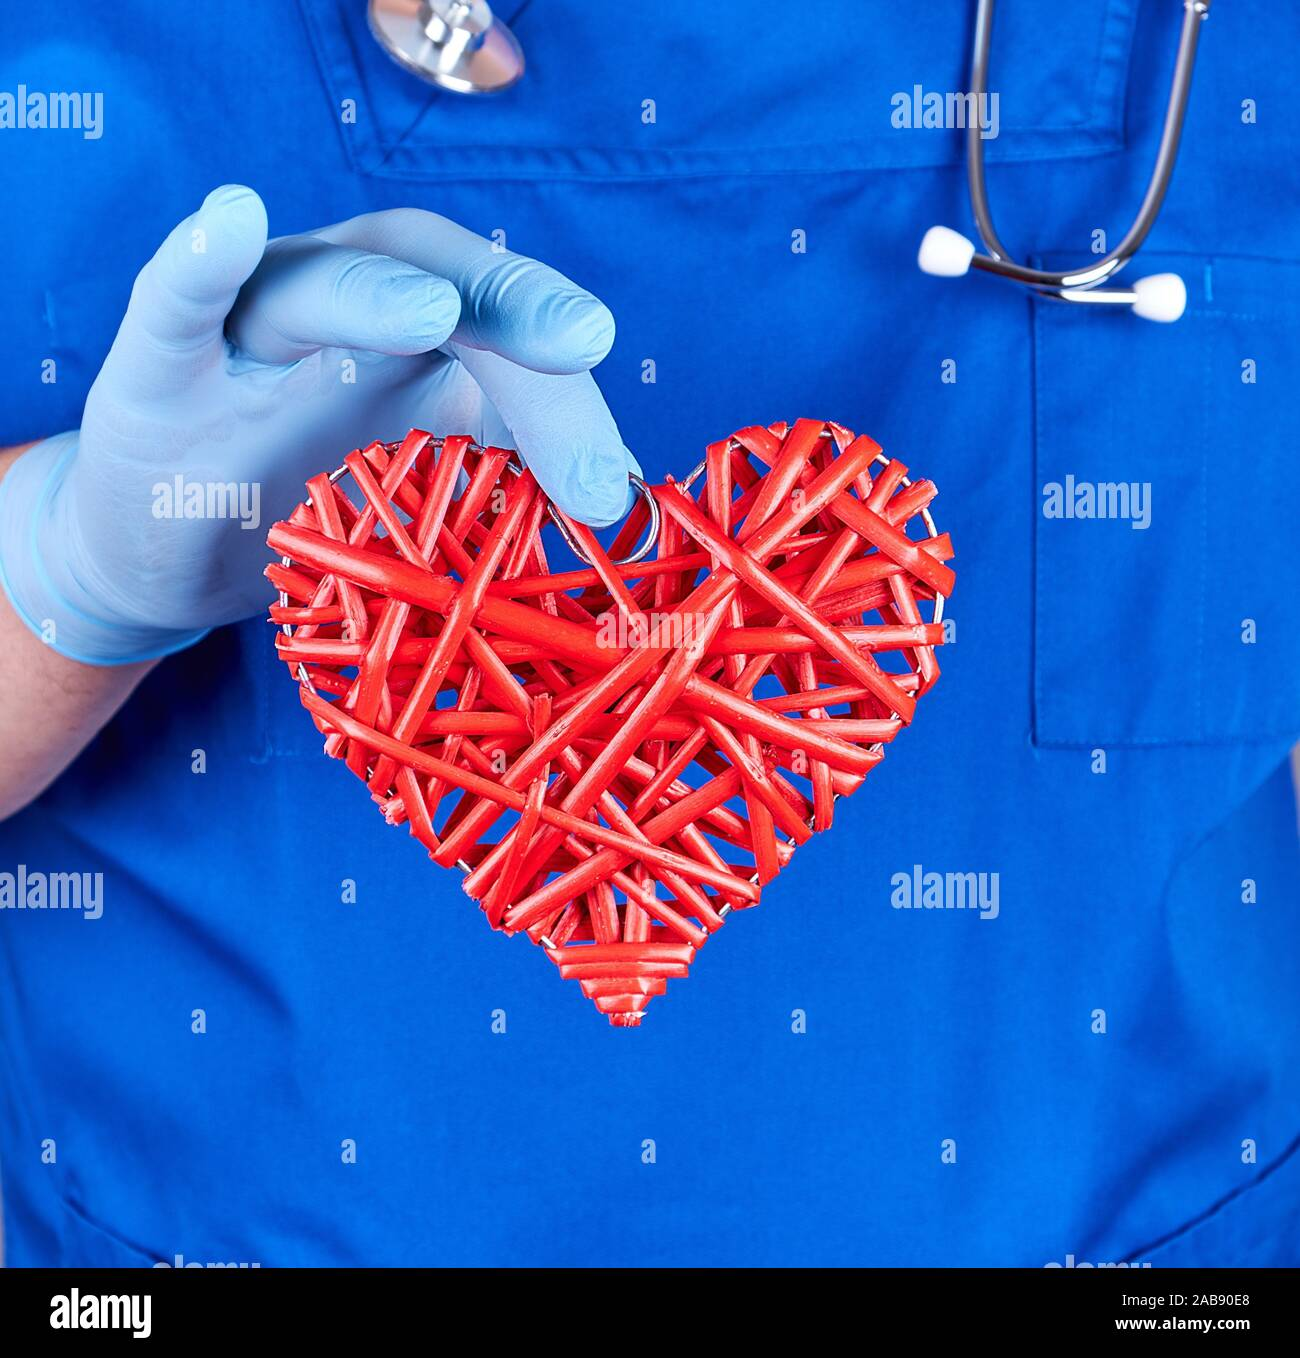 doctor in blue uniform and sterile latex gloves holds a big red heart, close up. - Stock Photo